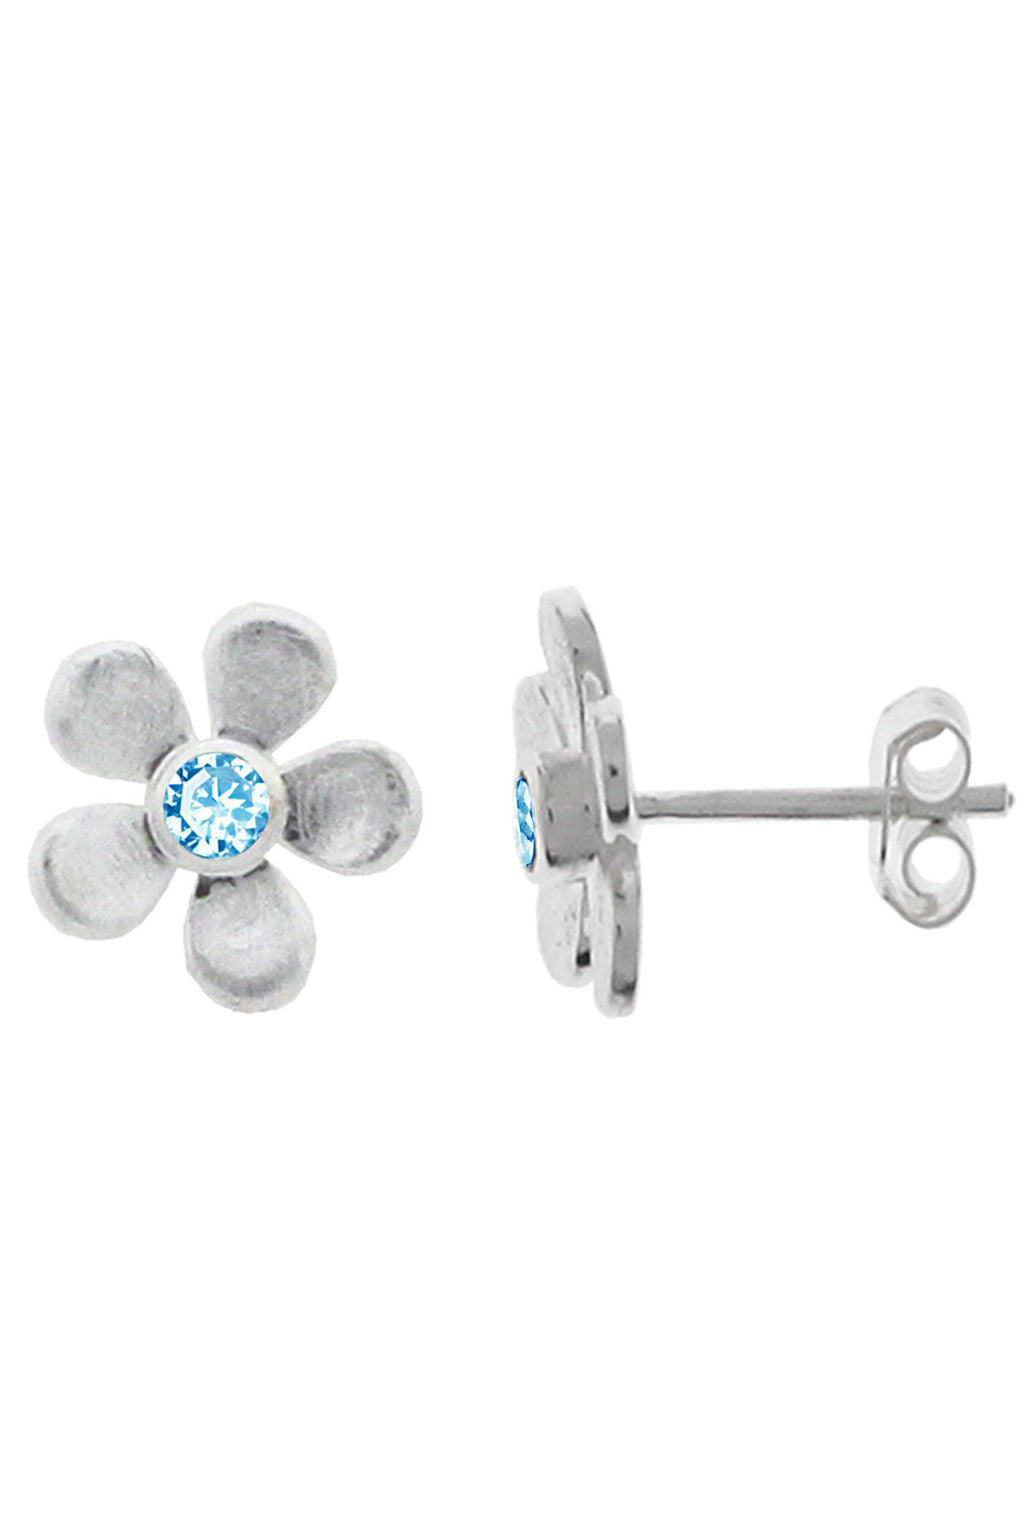 Silver Flower CZ stud earrings